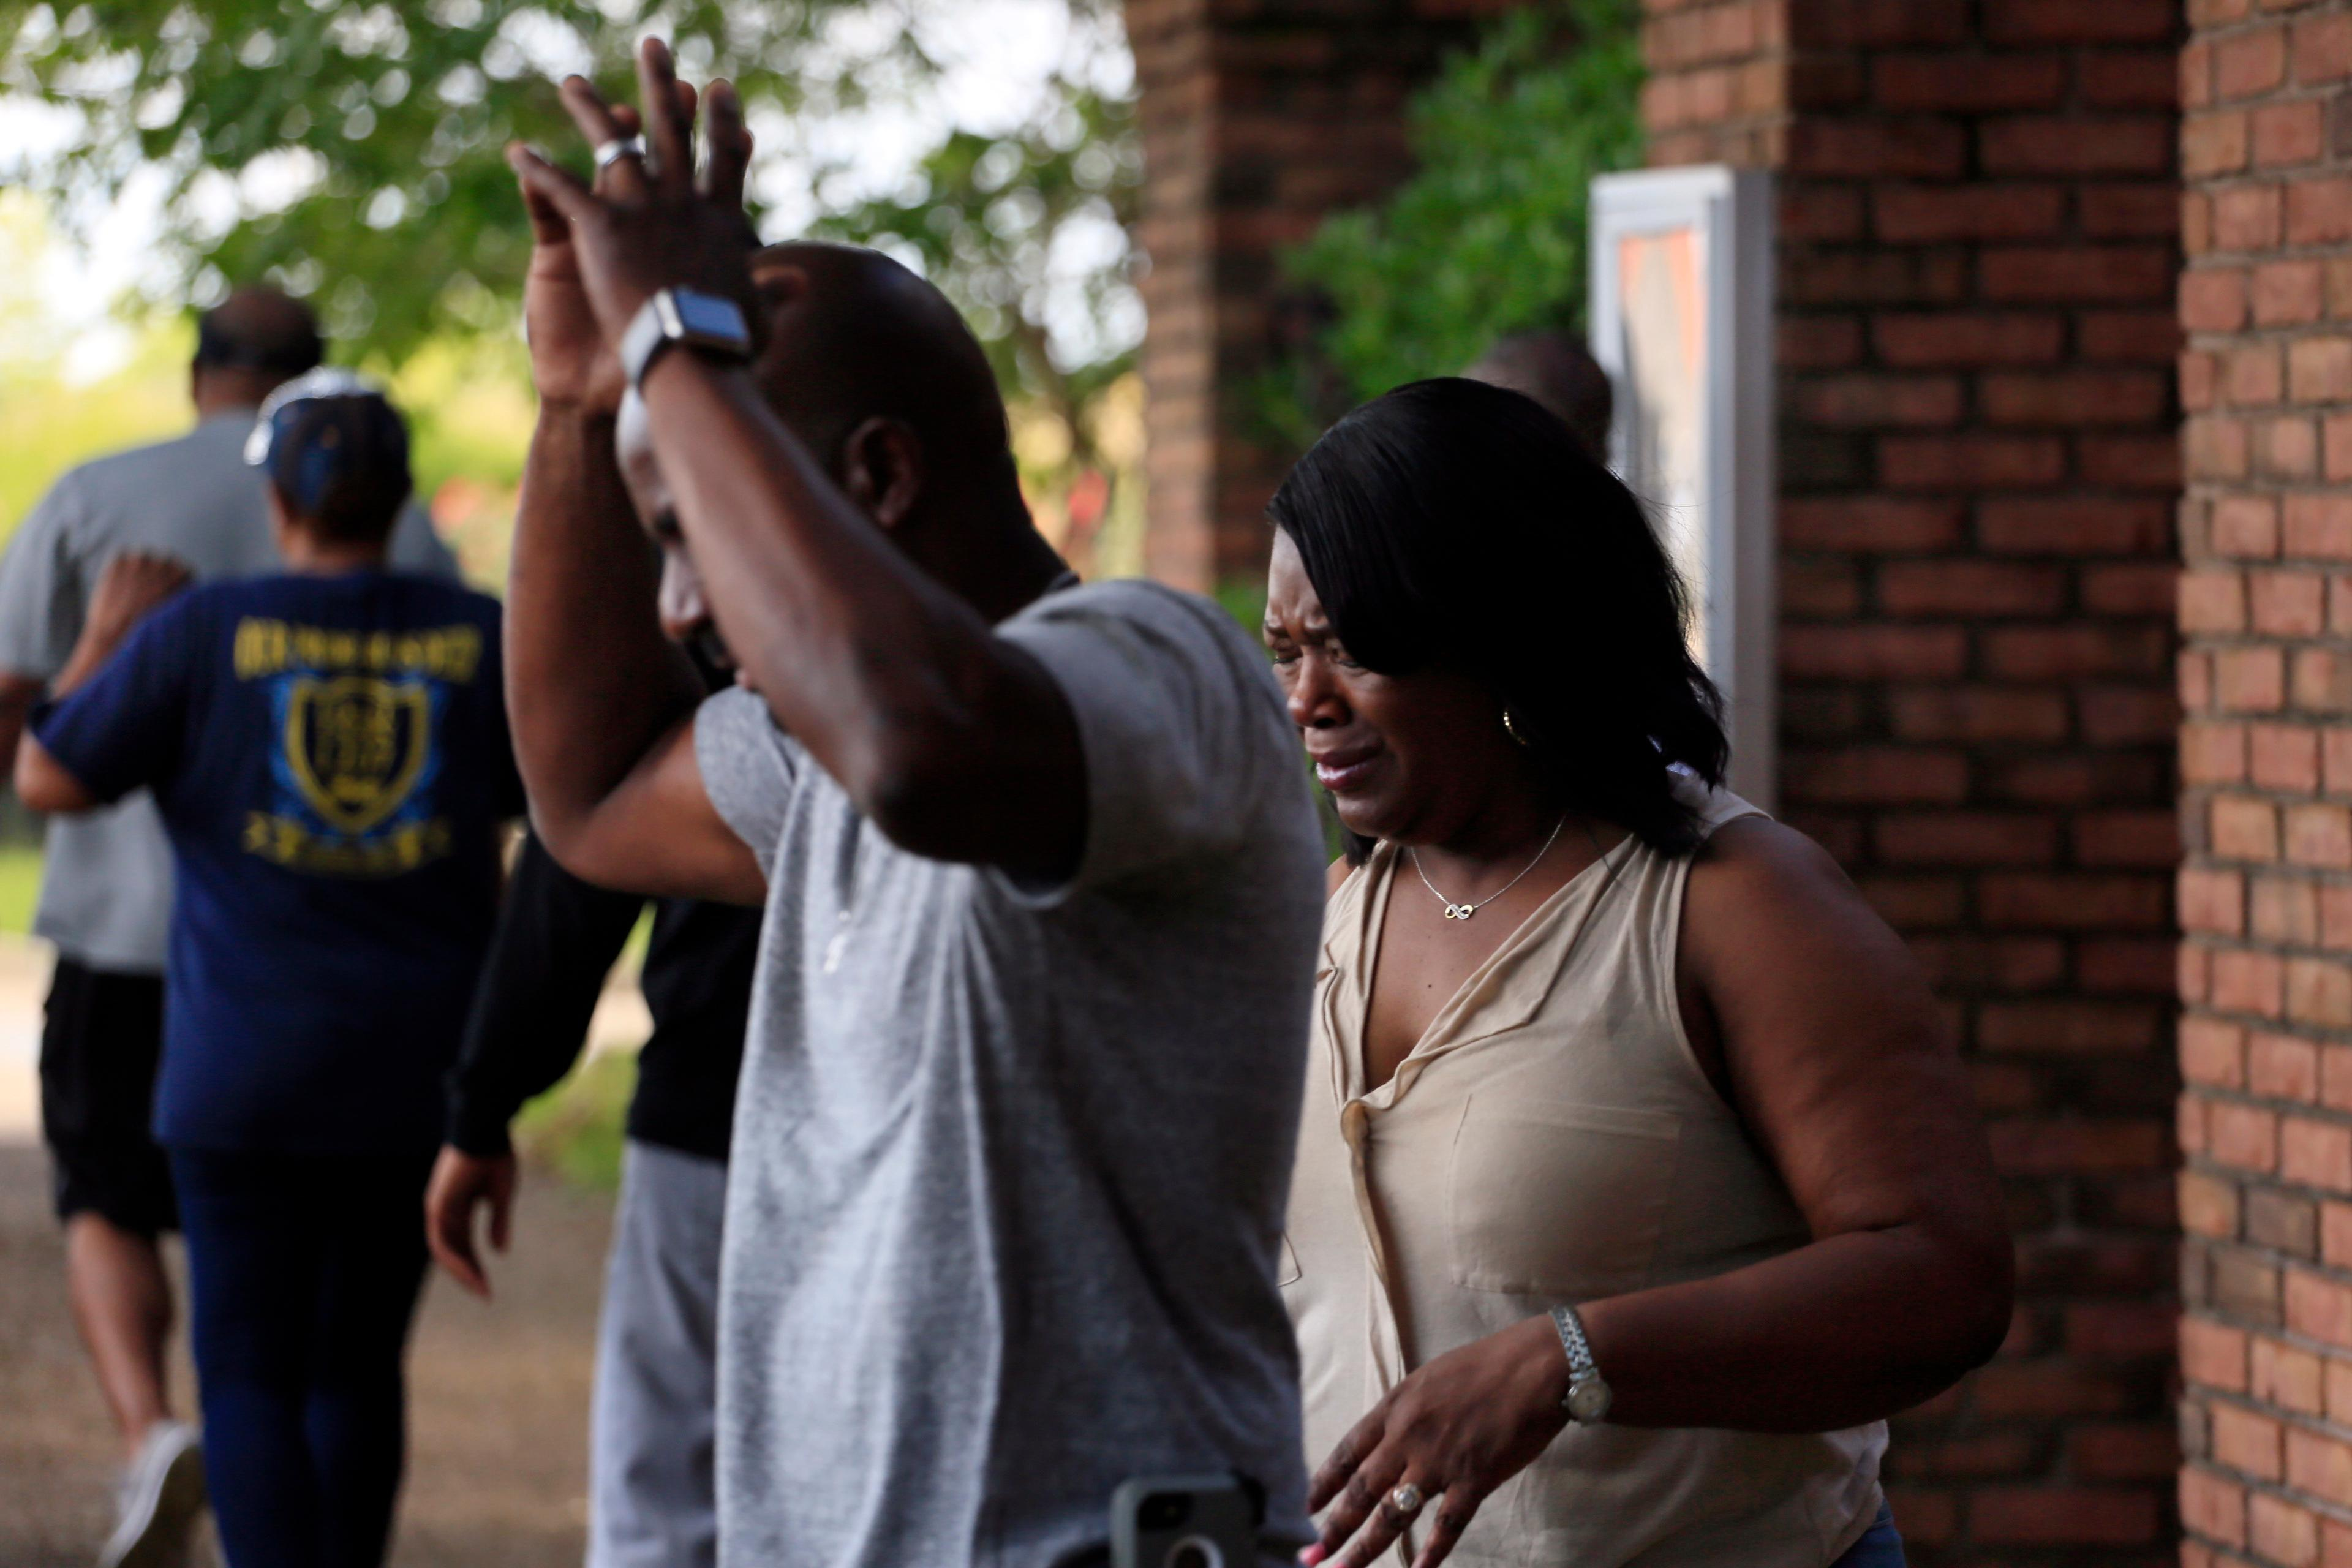 Family members react after learning that Kingston Frazier was found dead after being kidnapped during the theft of his mother's vehicle from a Kroger parking lot Thursday, May 18, 2017, in Jackson, Miss. (Elijah Baylis/The Clarion-Ledger via AP)